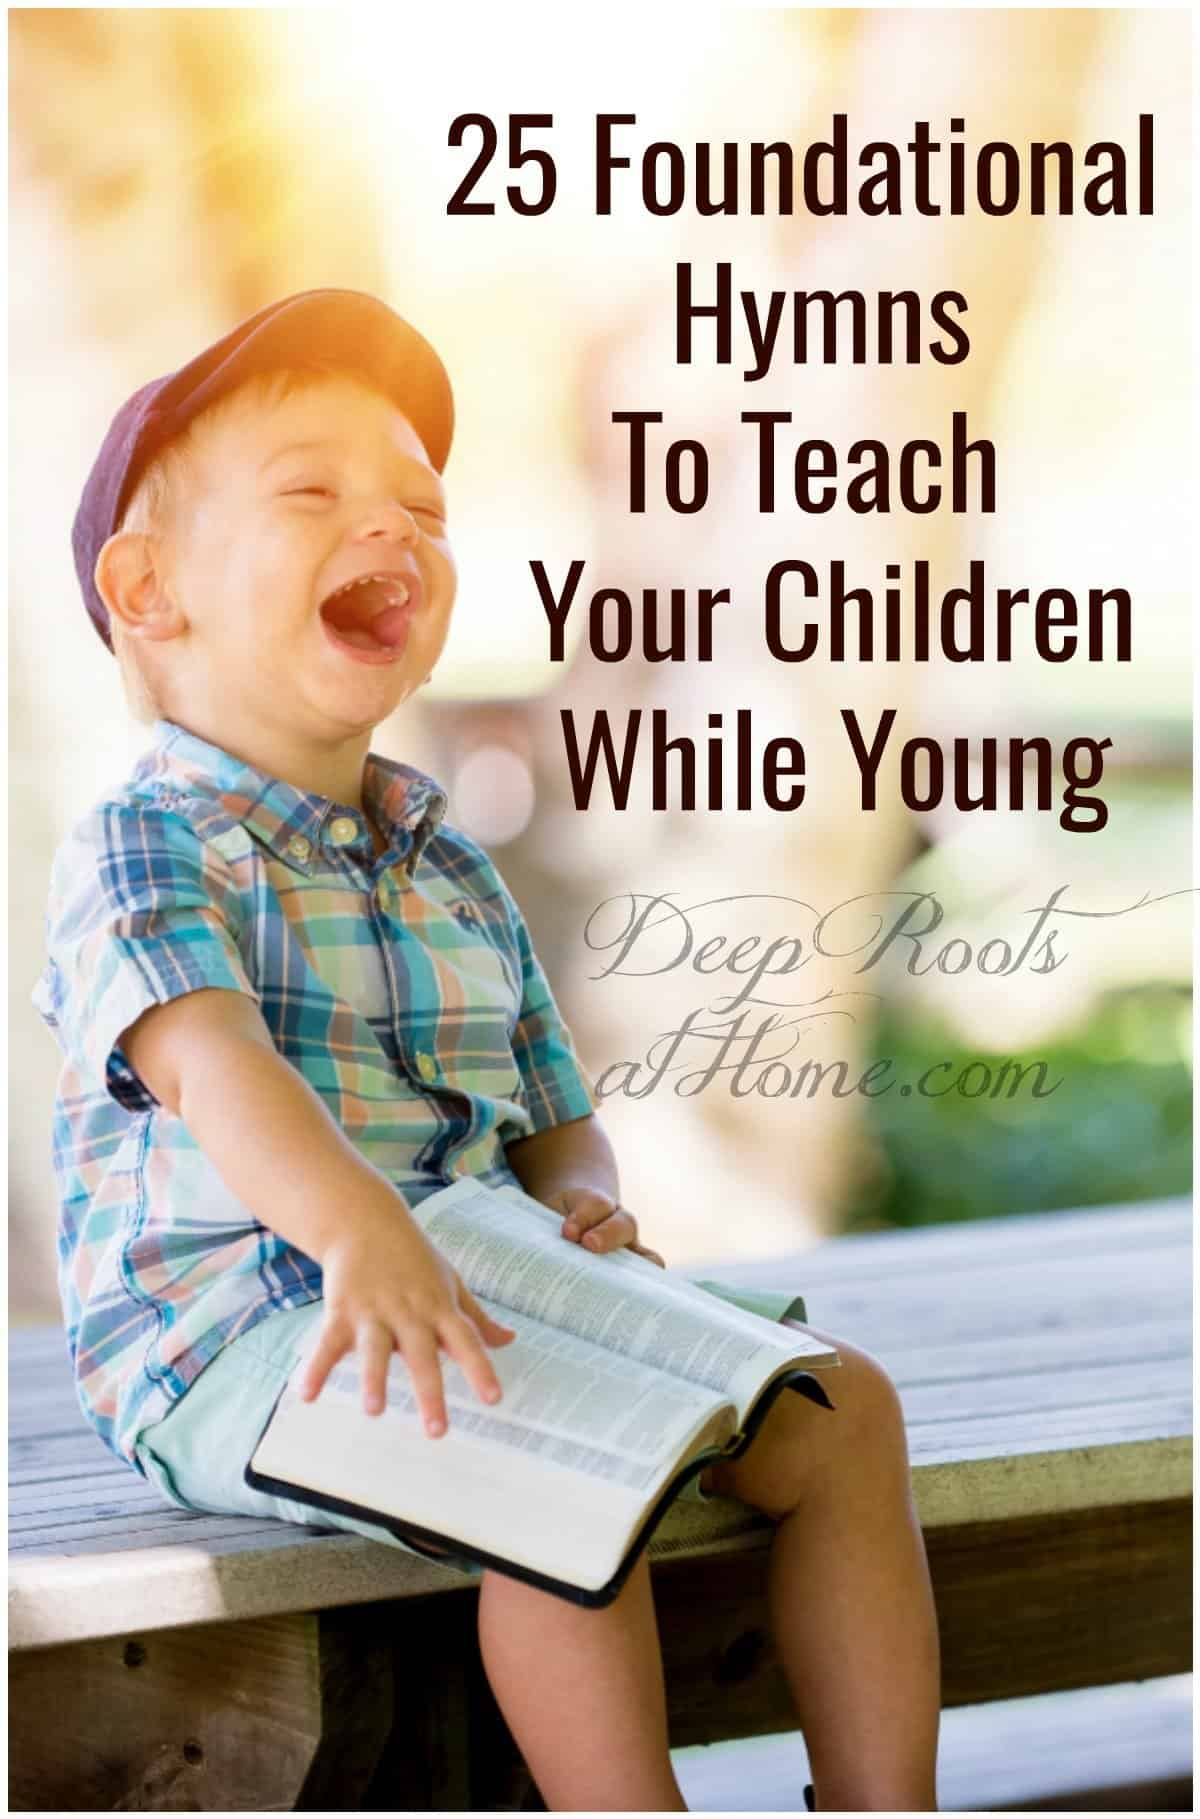 25 Foundational Hymns To Teach Your Children While Young, happy singing boy